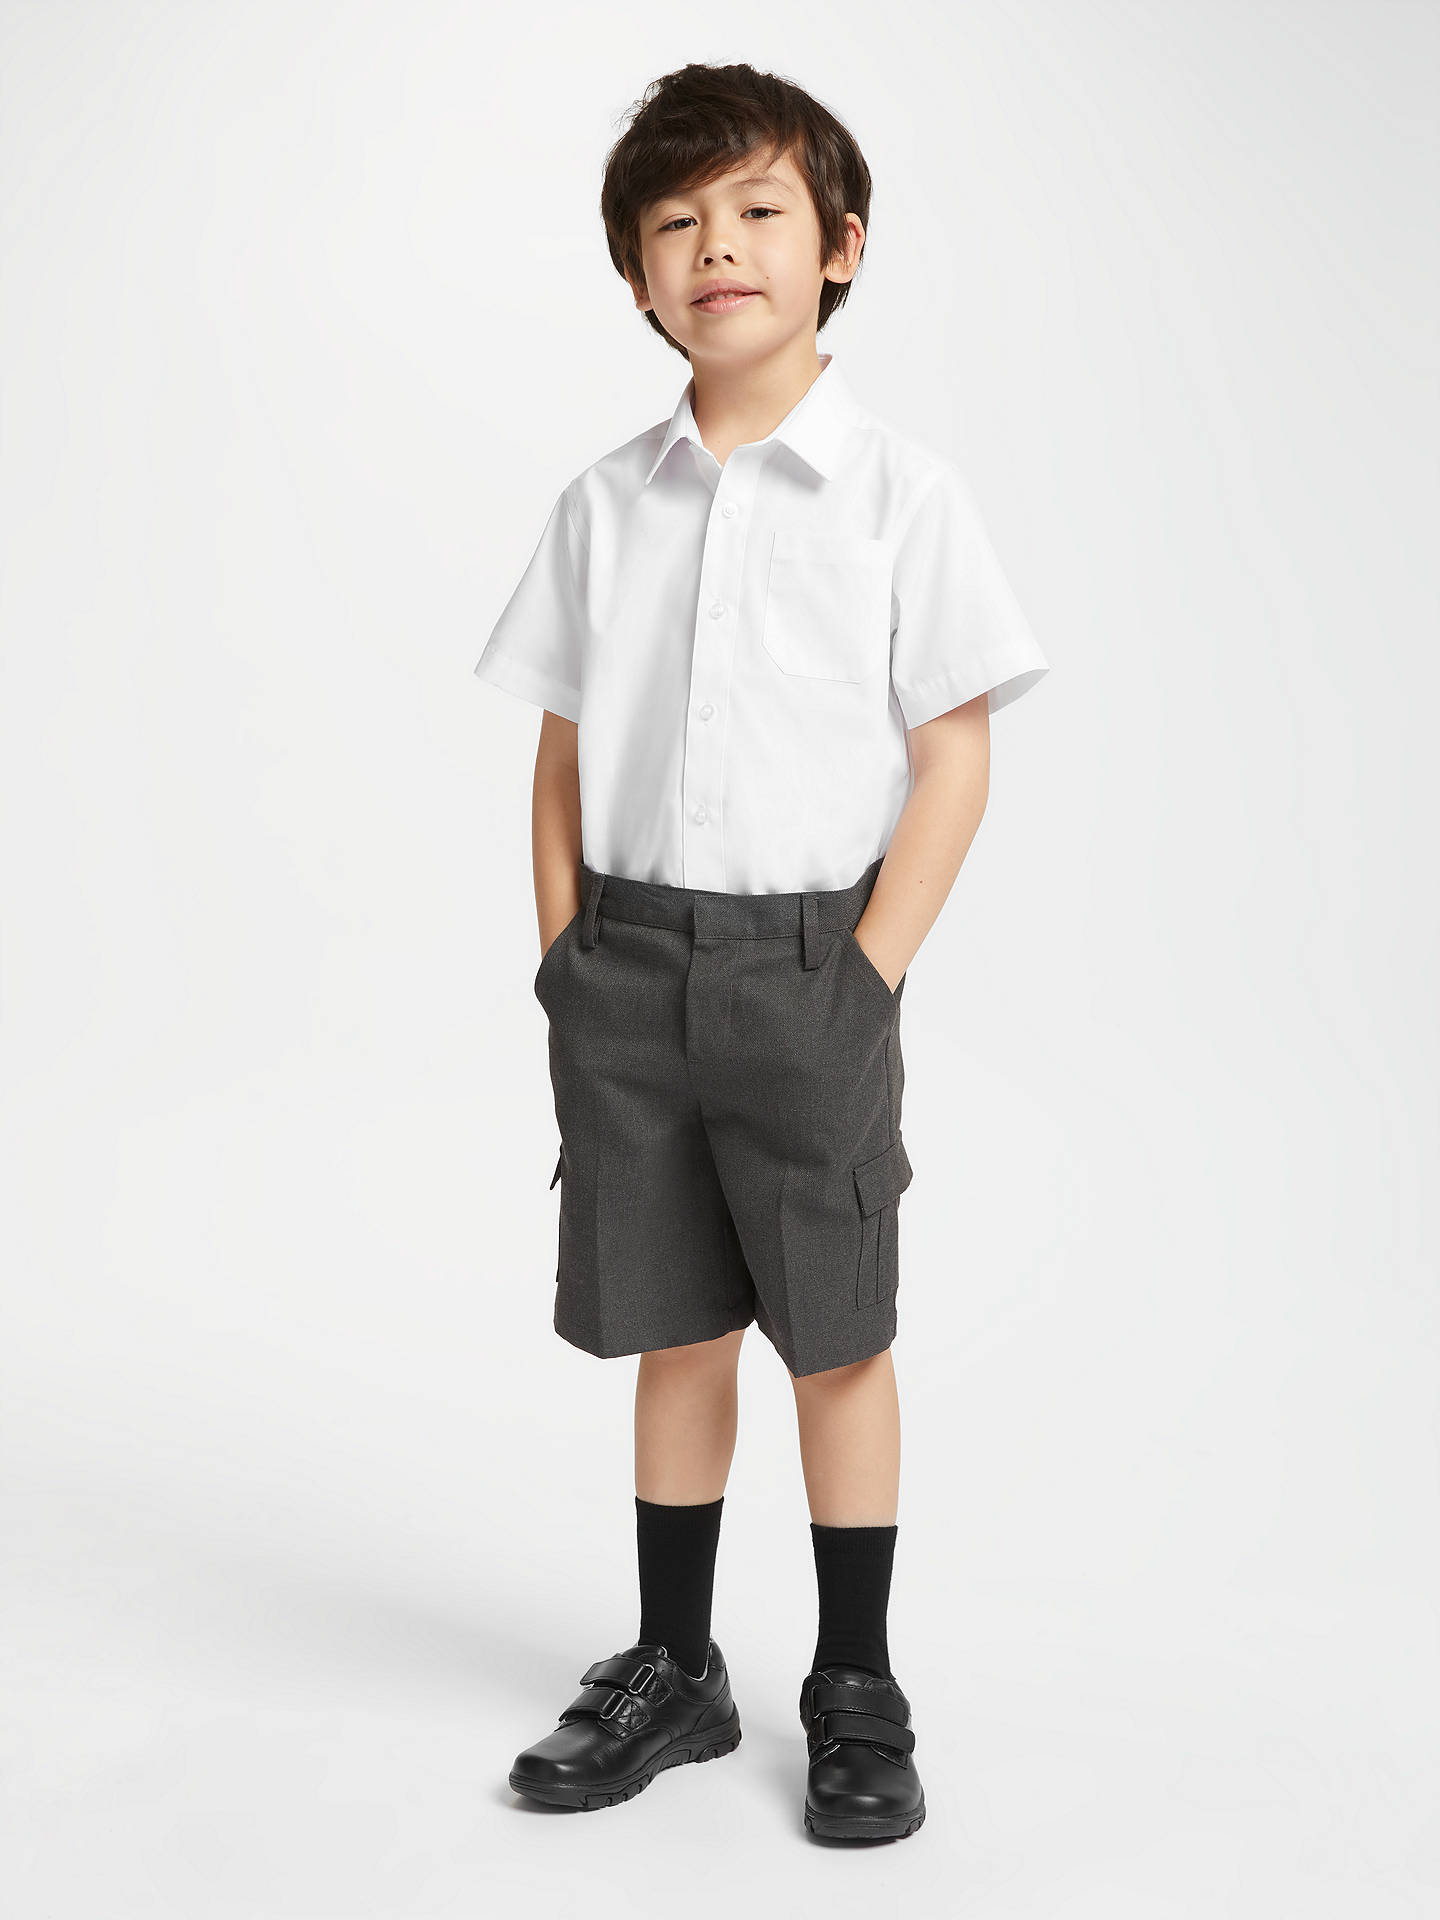 Buy John Lewis & Partners Easy Care Short Sleeve School Shirt, Pack of 2, White, 16 years Online at johnlewis.com